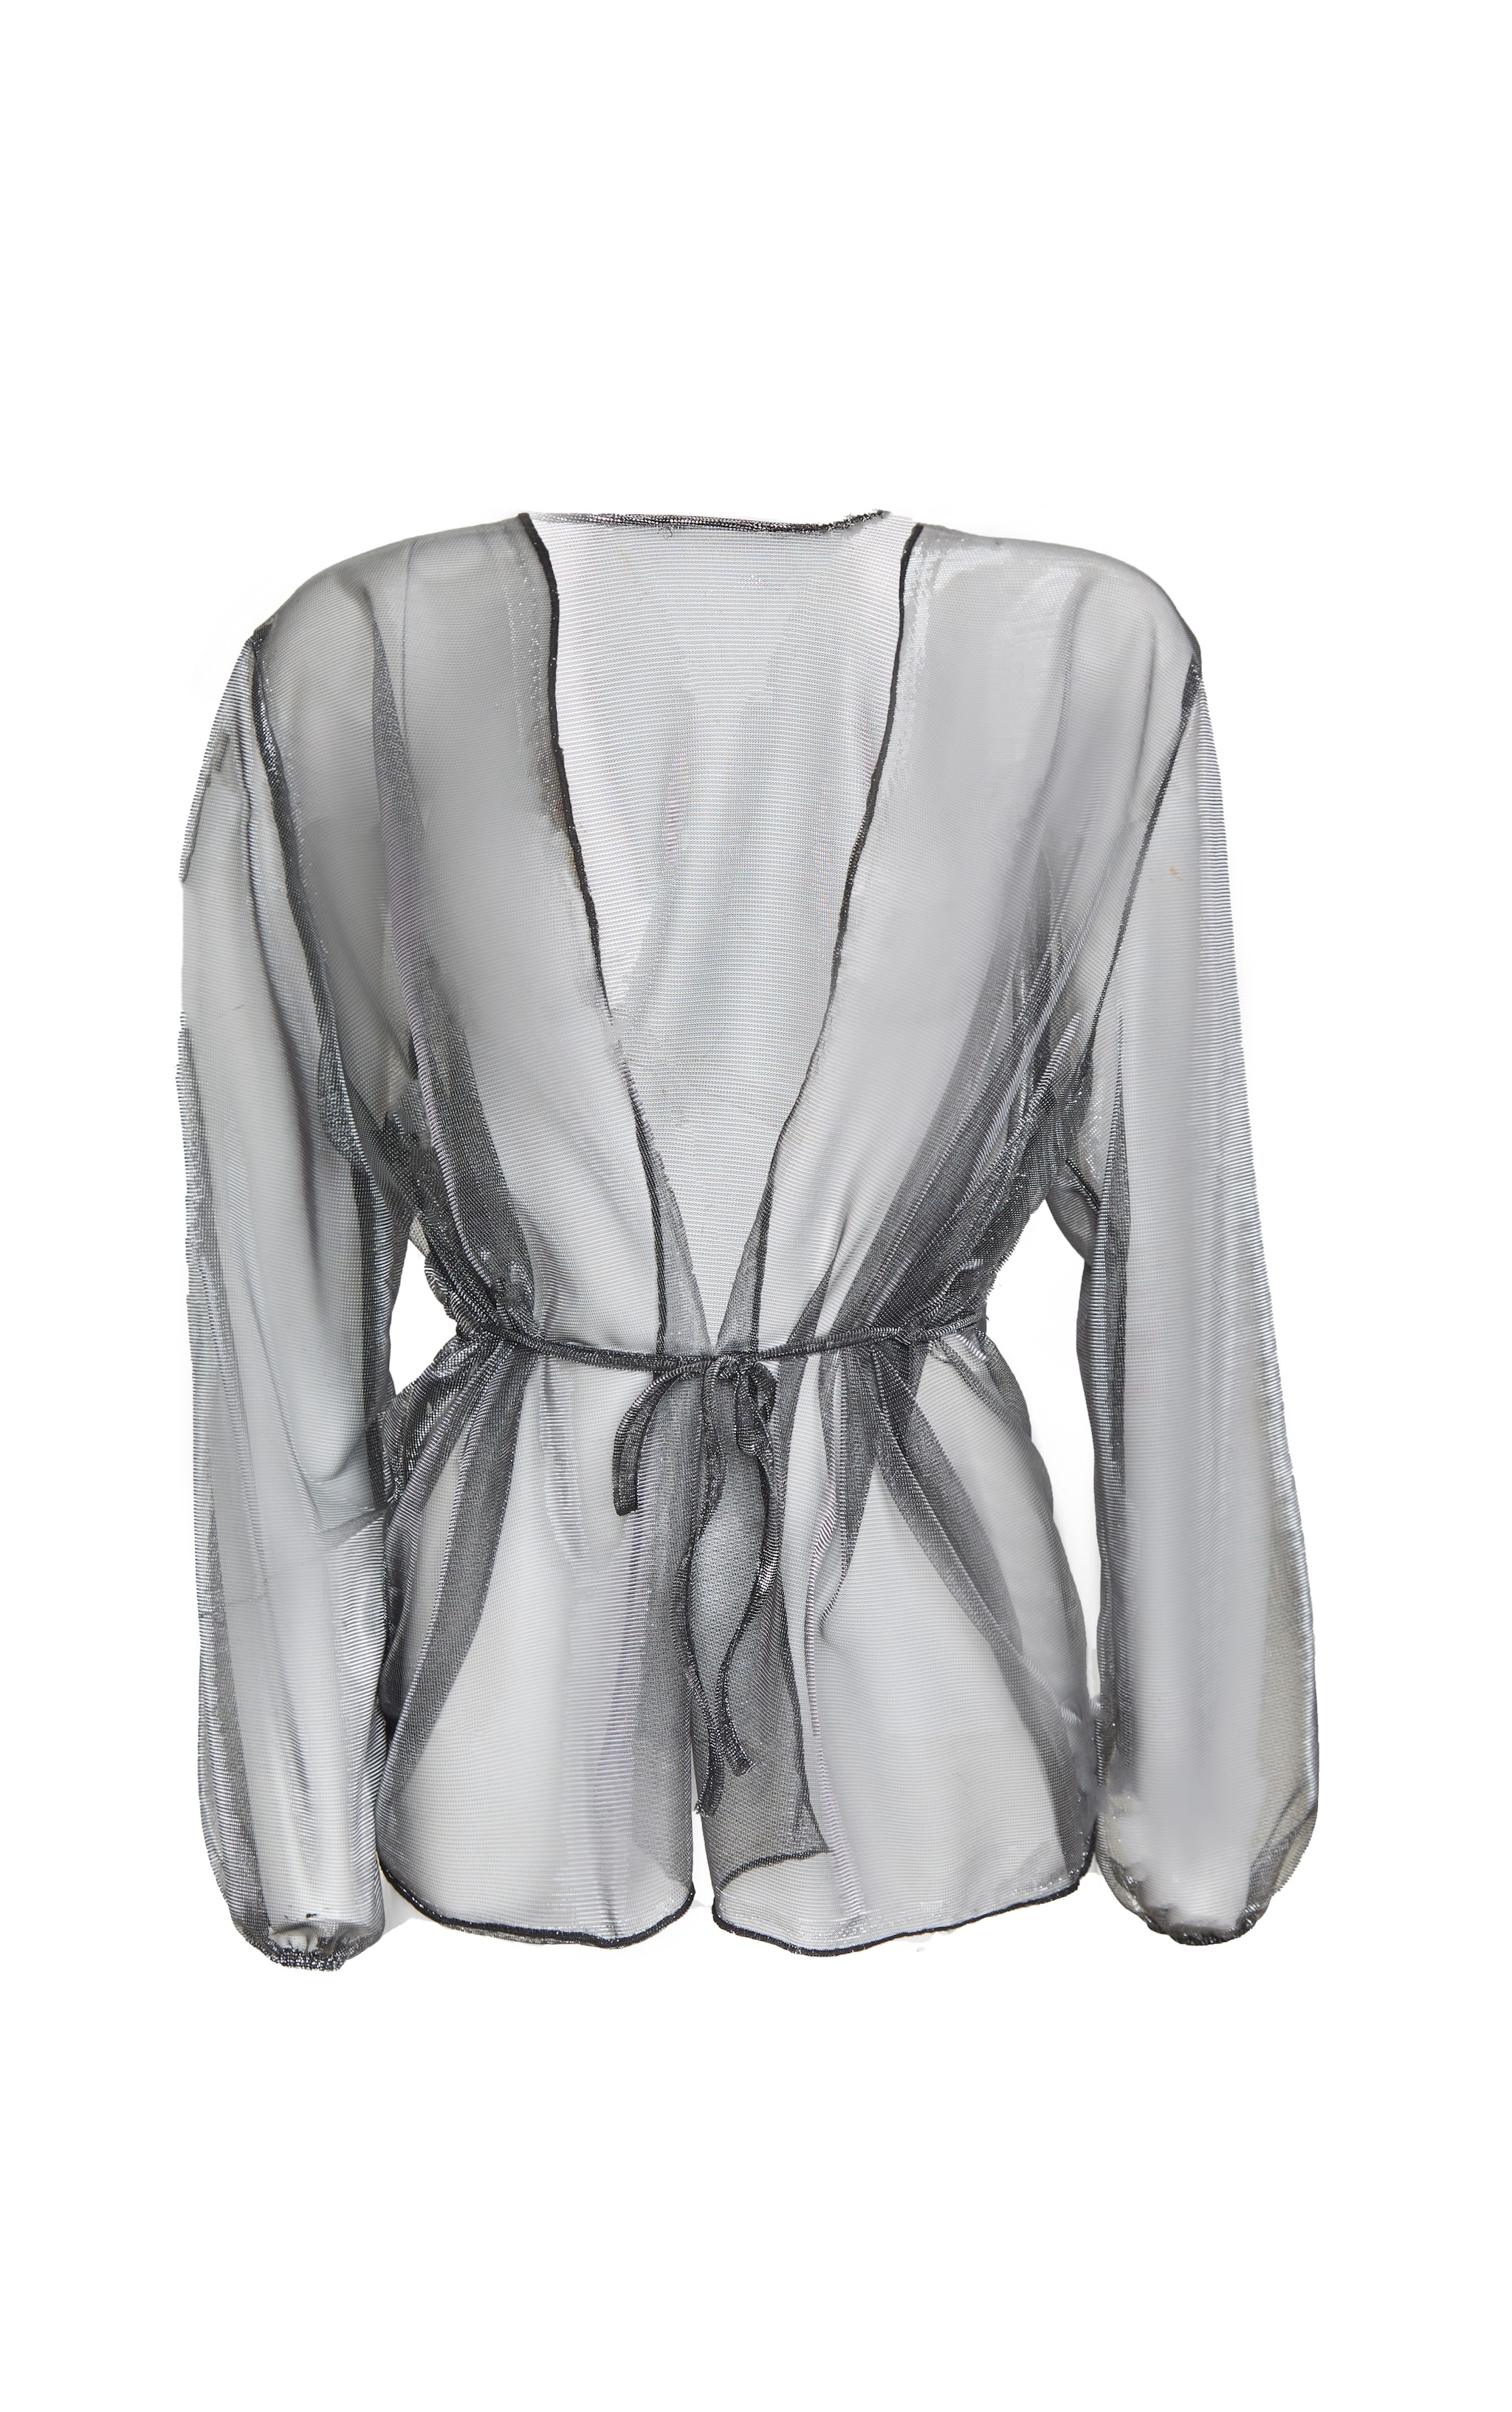 Silver Metallic Tie Front Blouse 3